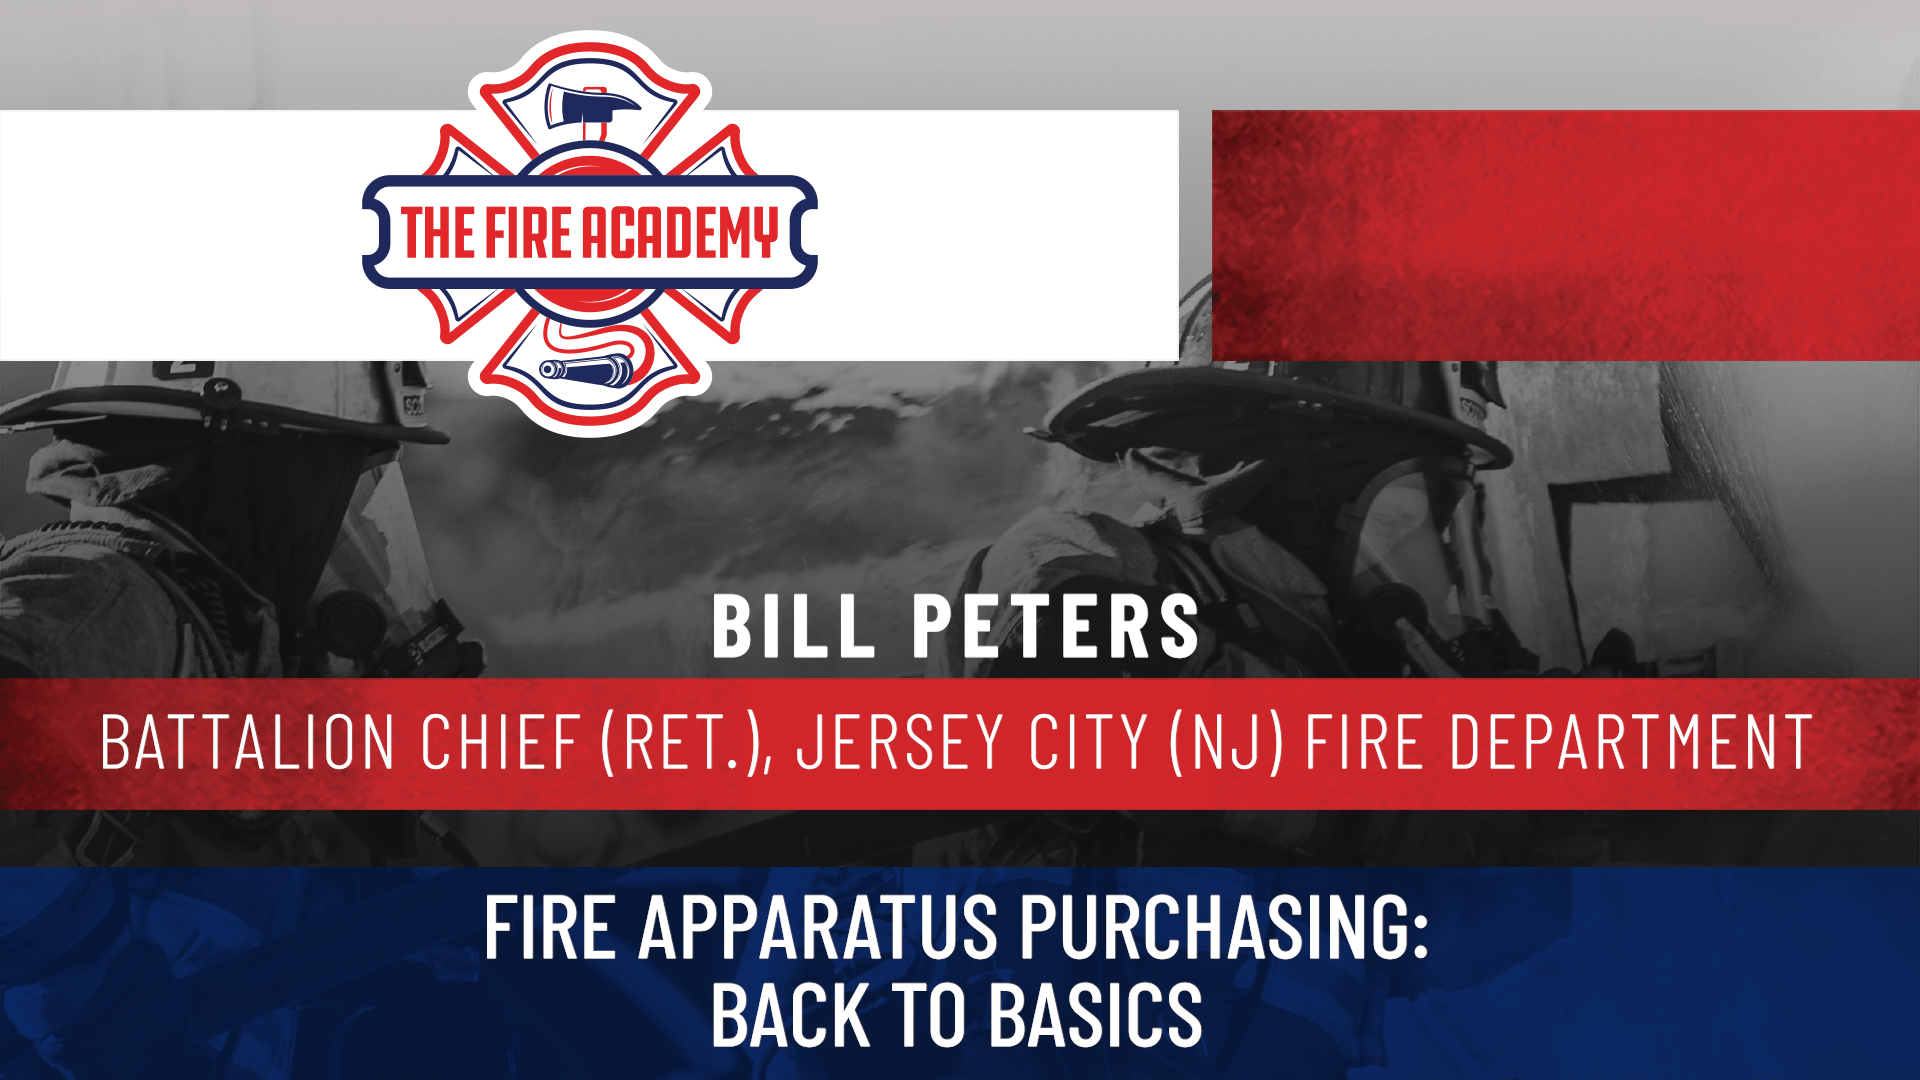 Fire Apparatus Purchasing: Back to Basics